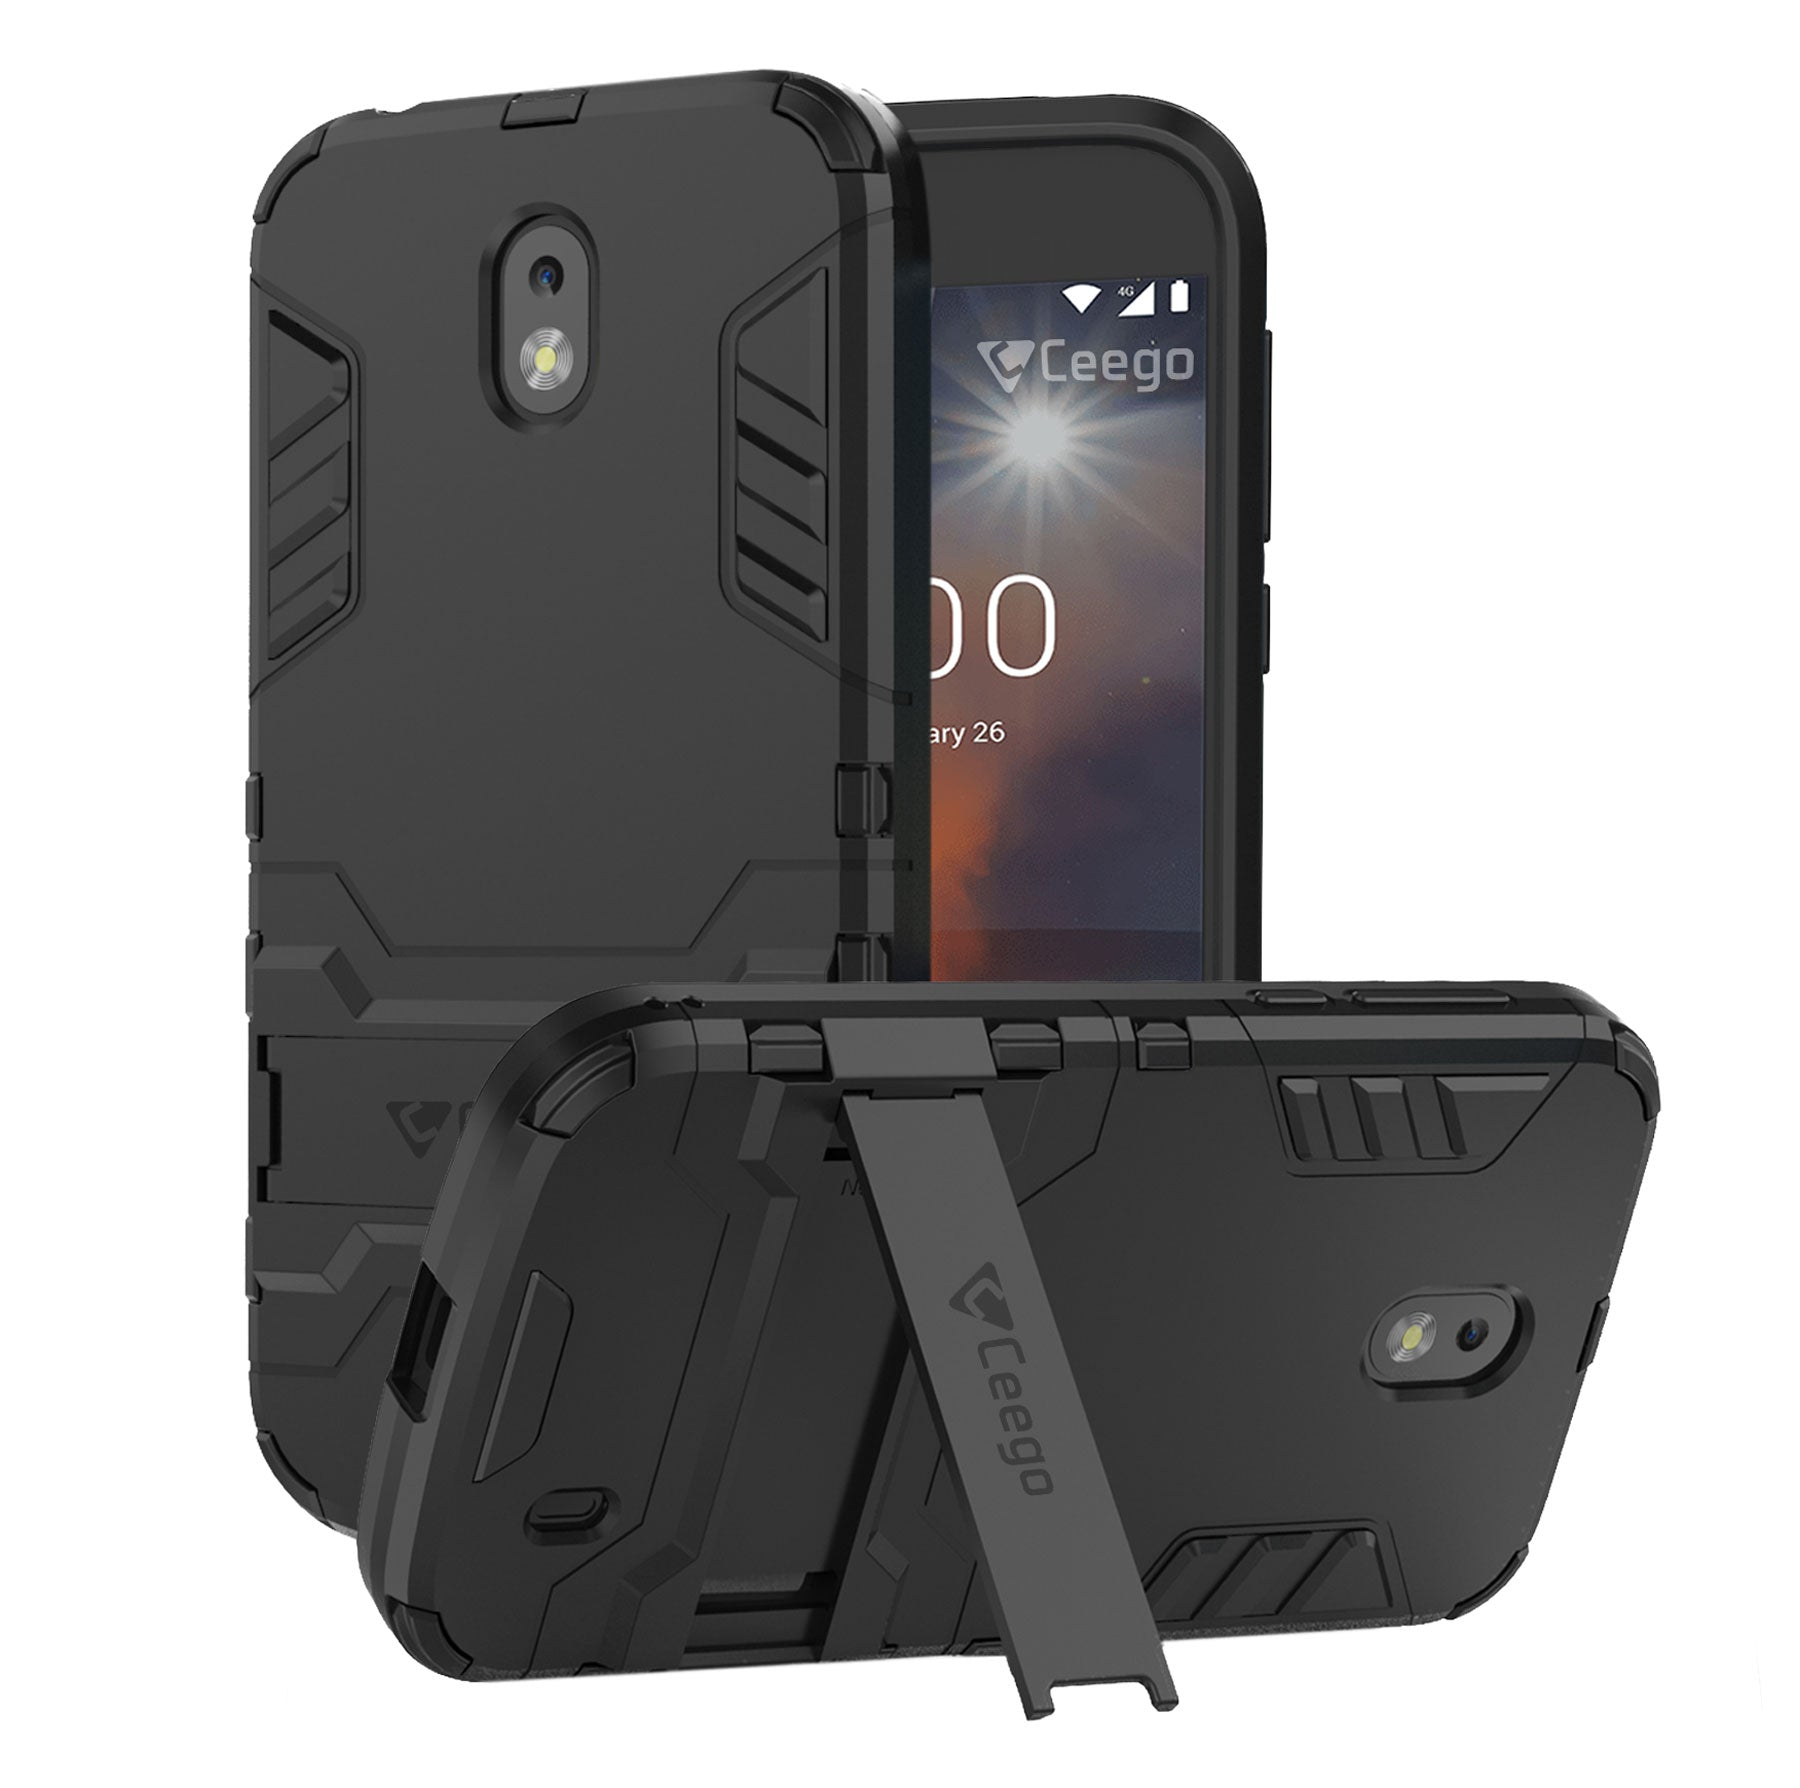 Ceego Stealth Defence Back Case for Nokia 1  – Matte Black